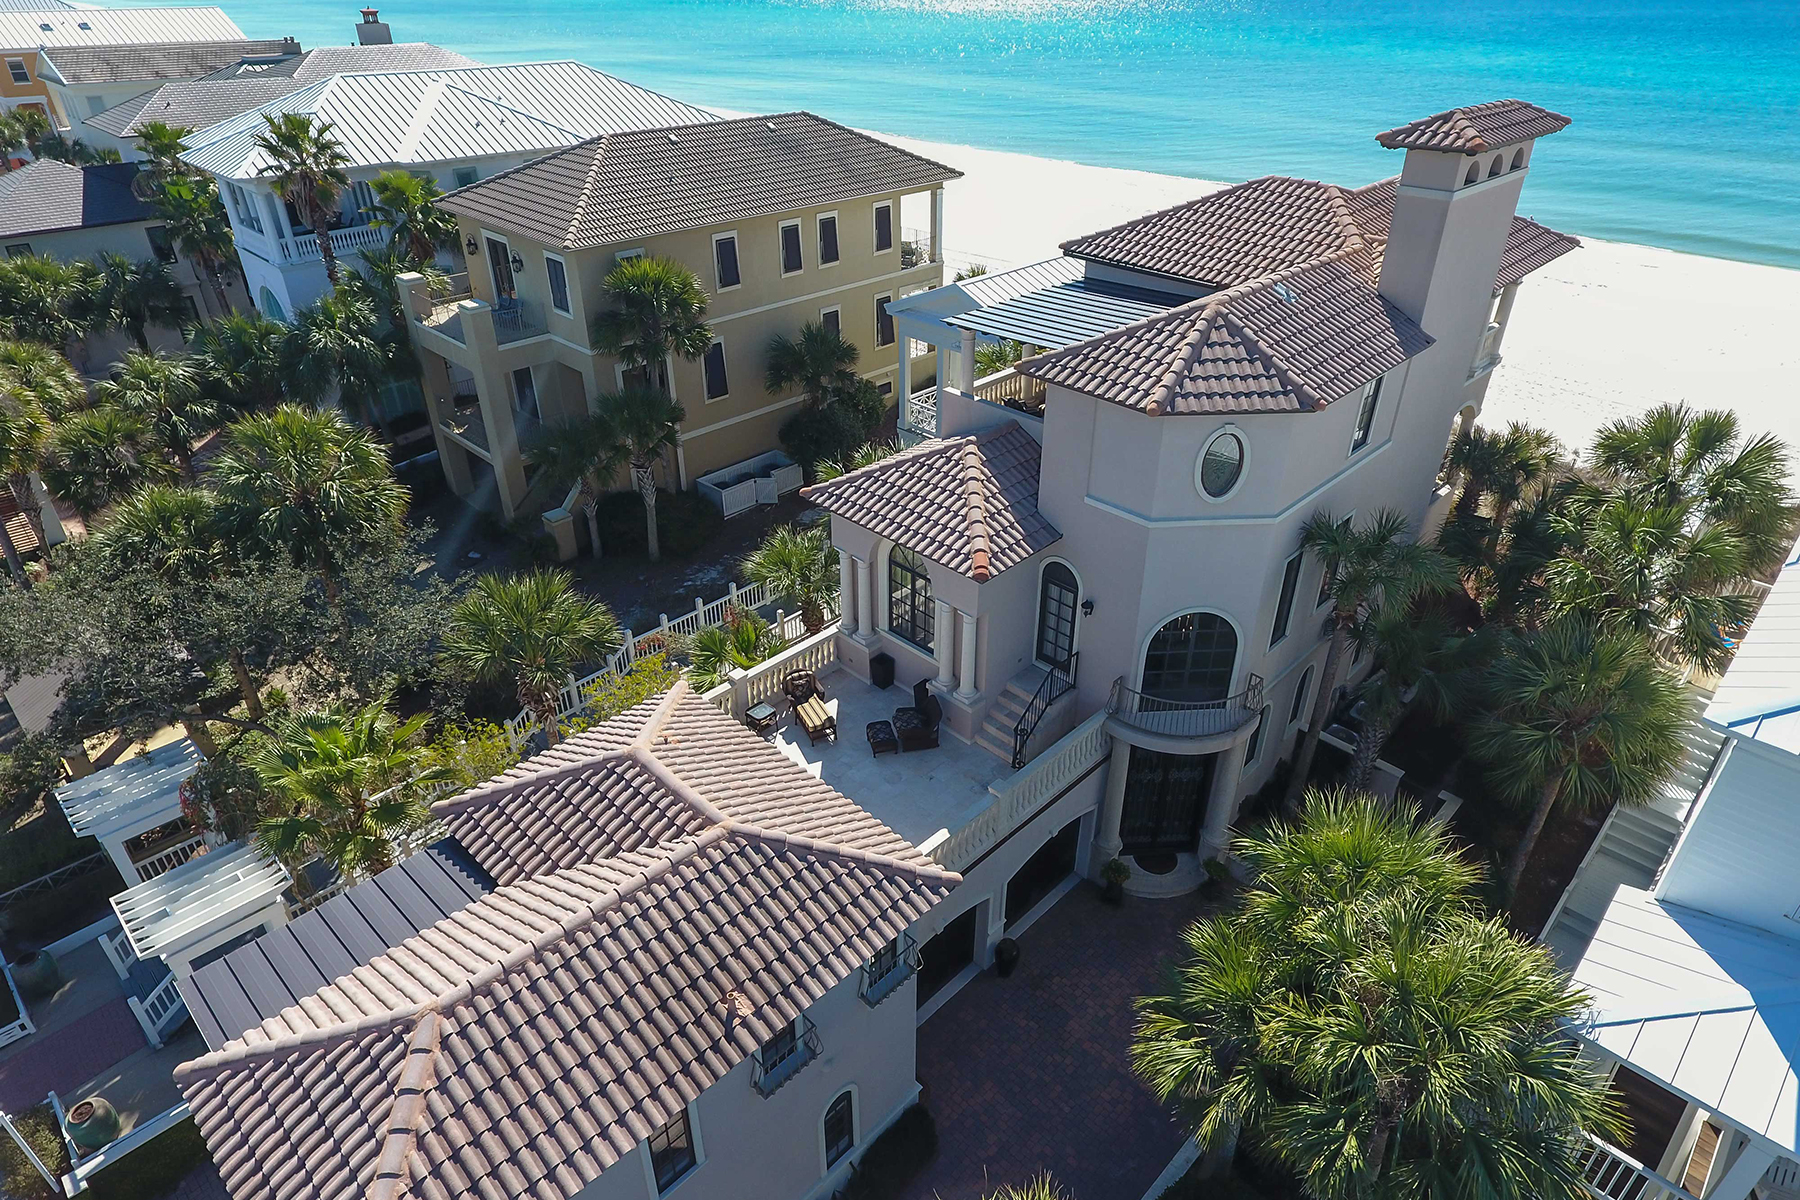 Einfamilienhaus für Verkauf beim OCEANFRONT LUXURY WITH MEDITERRANEAN CLASS AND STYLE 314 Beachside Drive Carillon Beach, Panama City Beach, Florida, 32413 Vereinigte Staaten